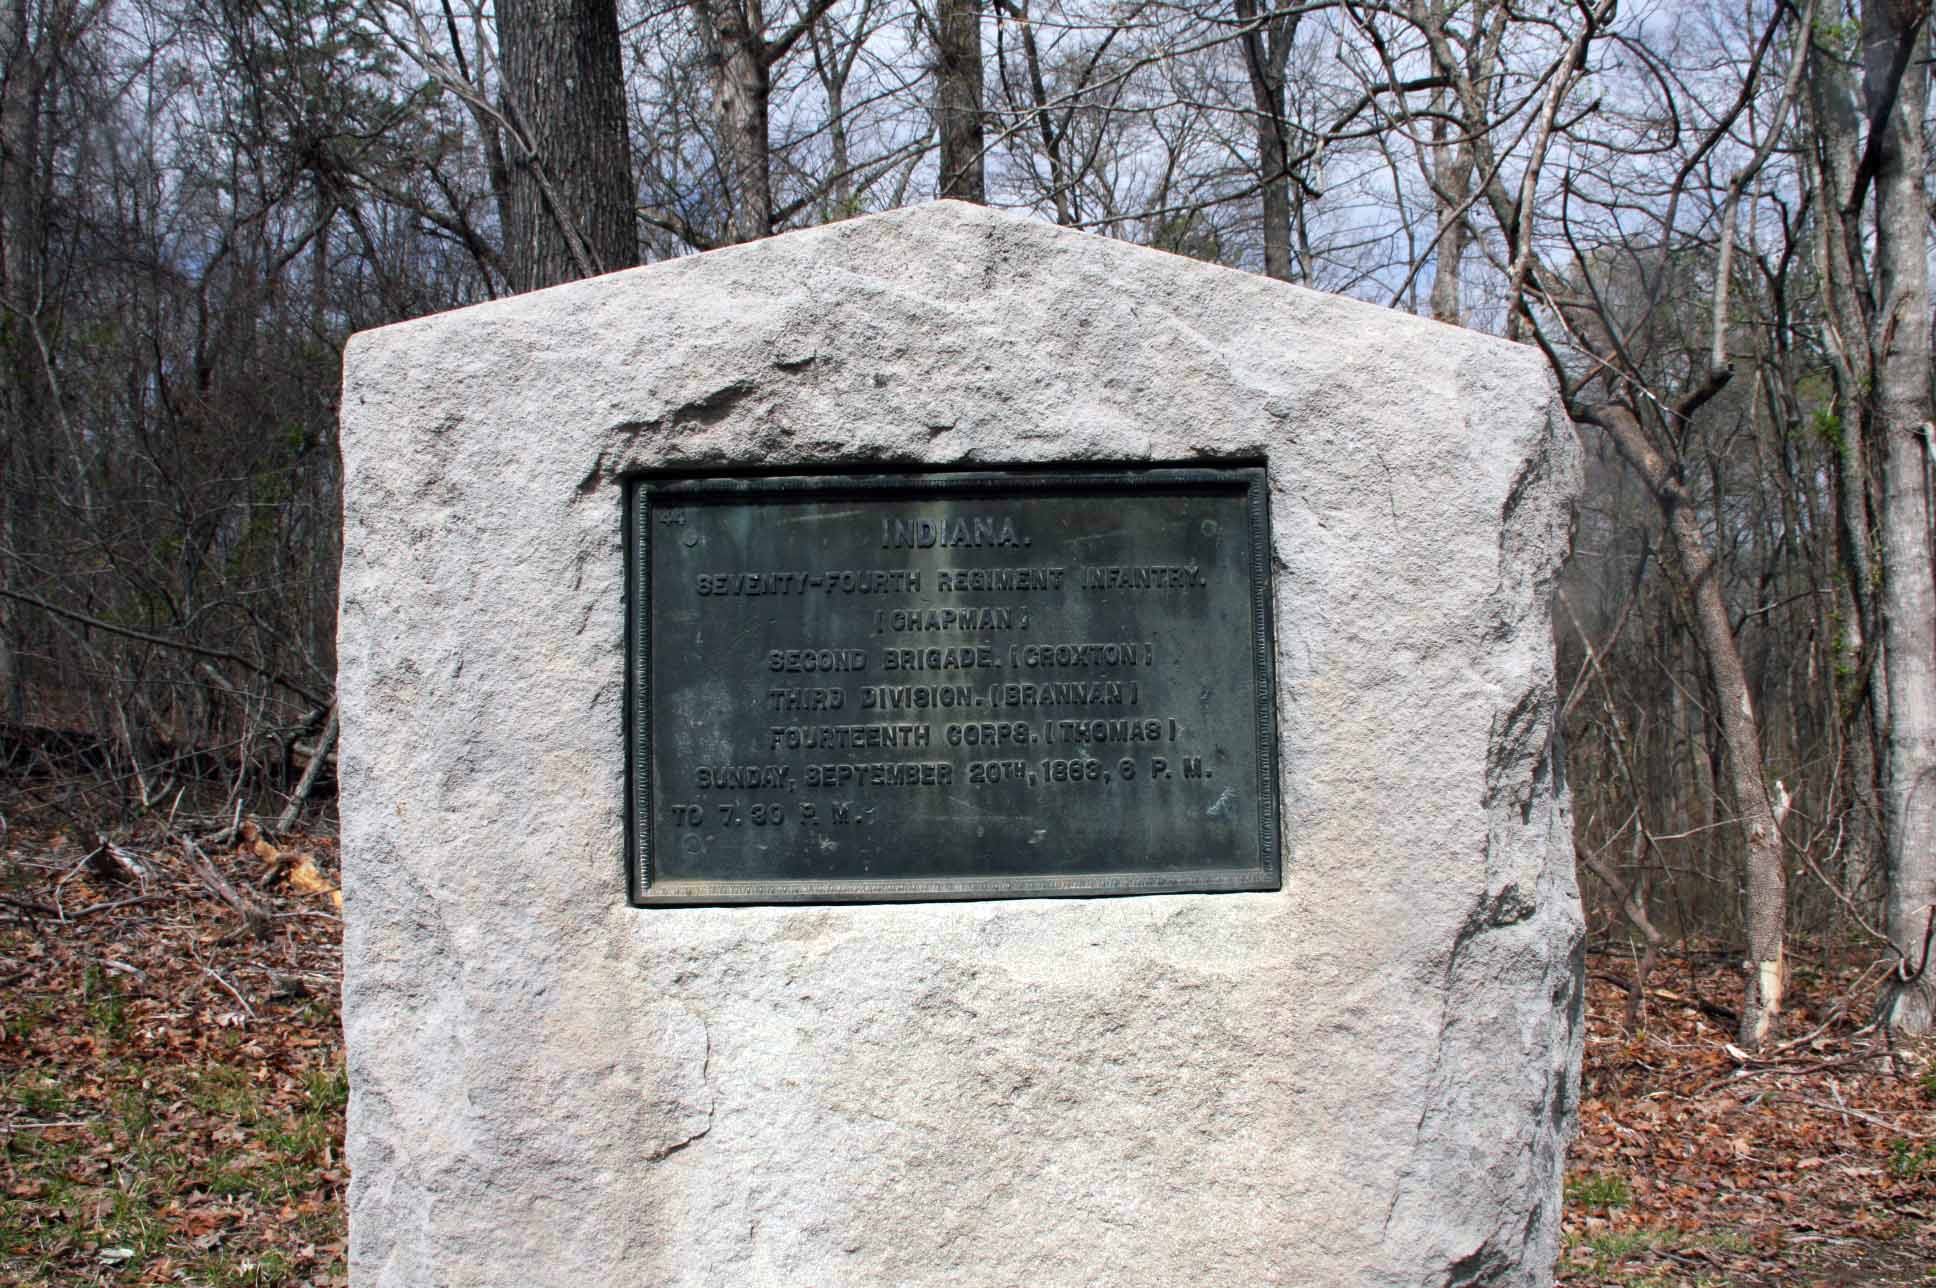 74th Indiana Infantry Regiment Marker, click photo to enlarge.